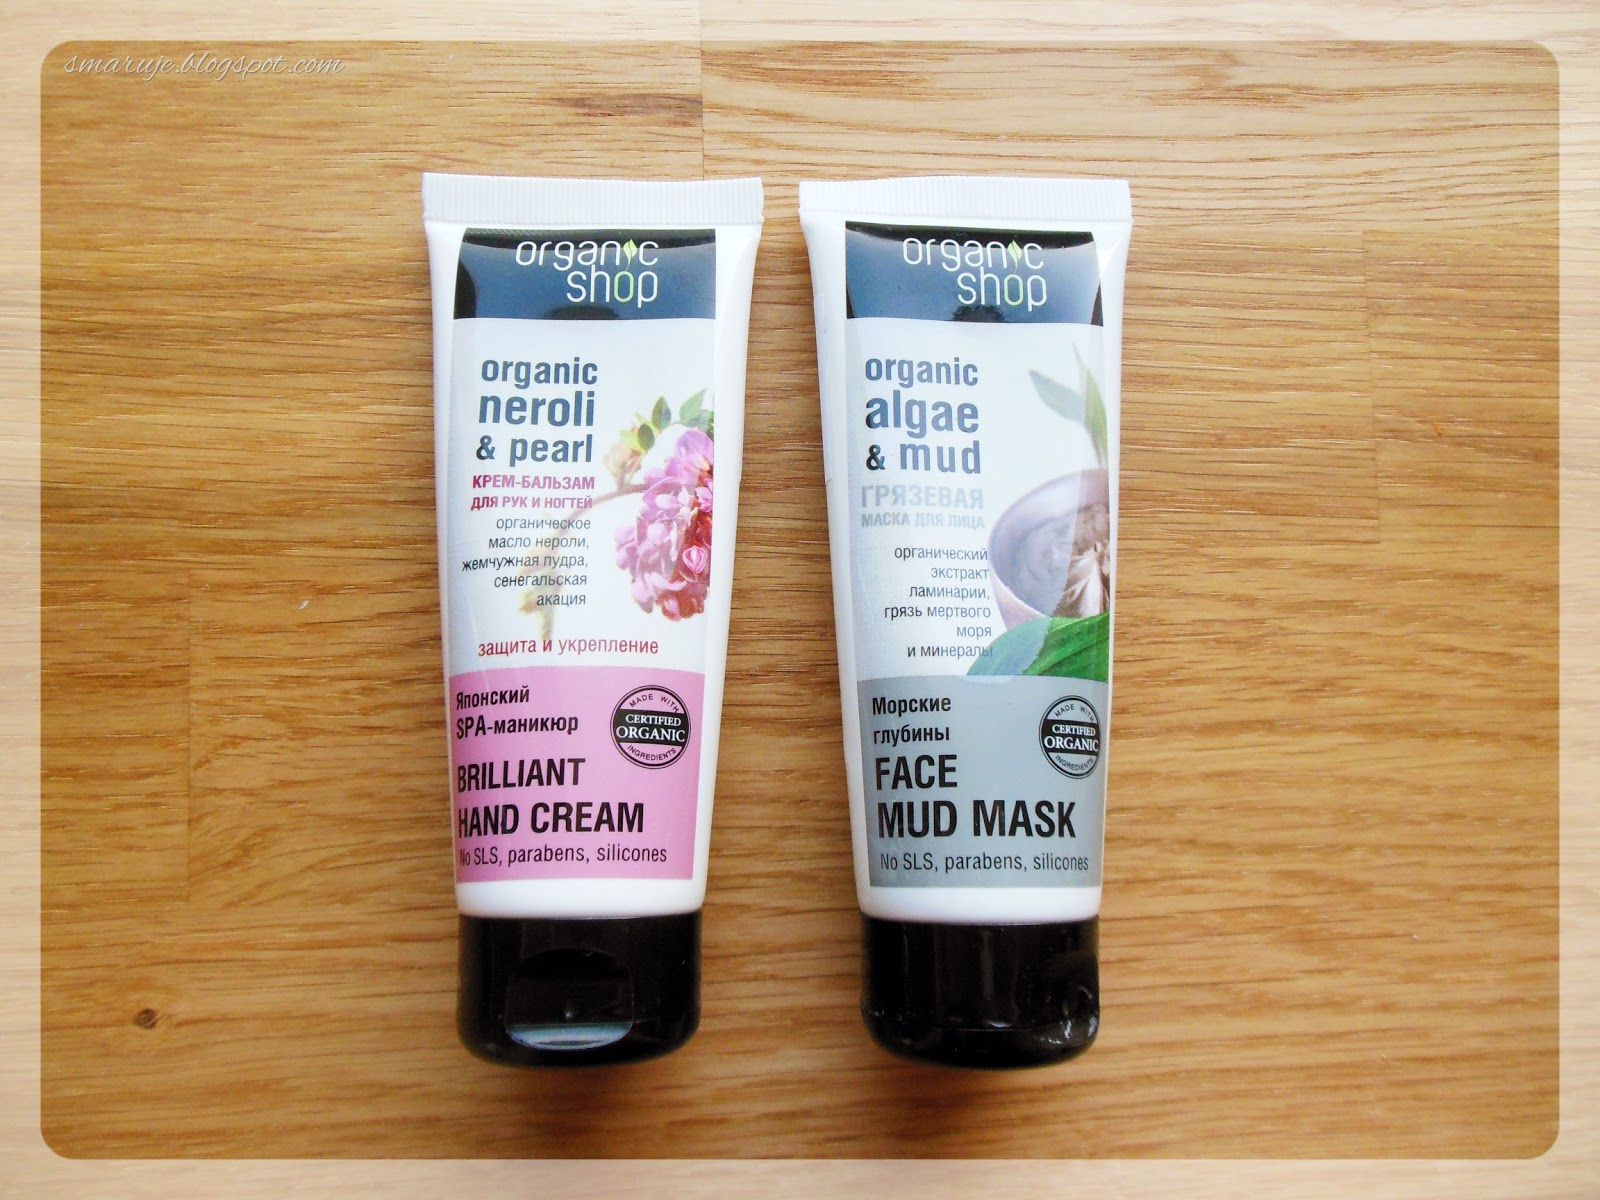 Organic Shop – Brilliant Hand Cream i Face Mud Mask [recenzja]